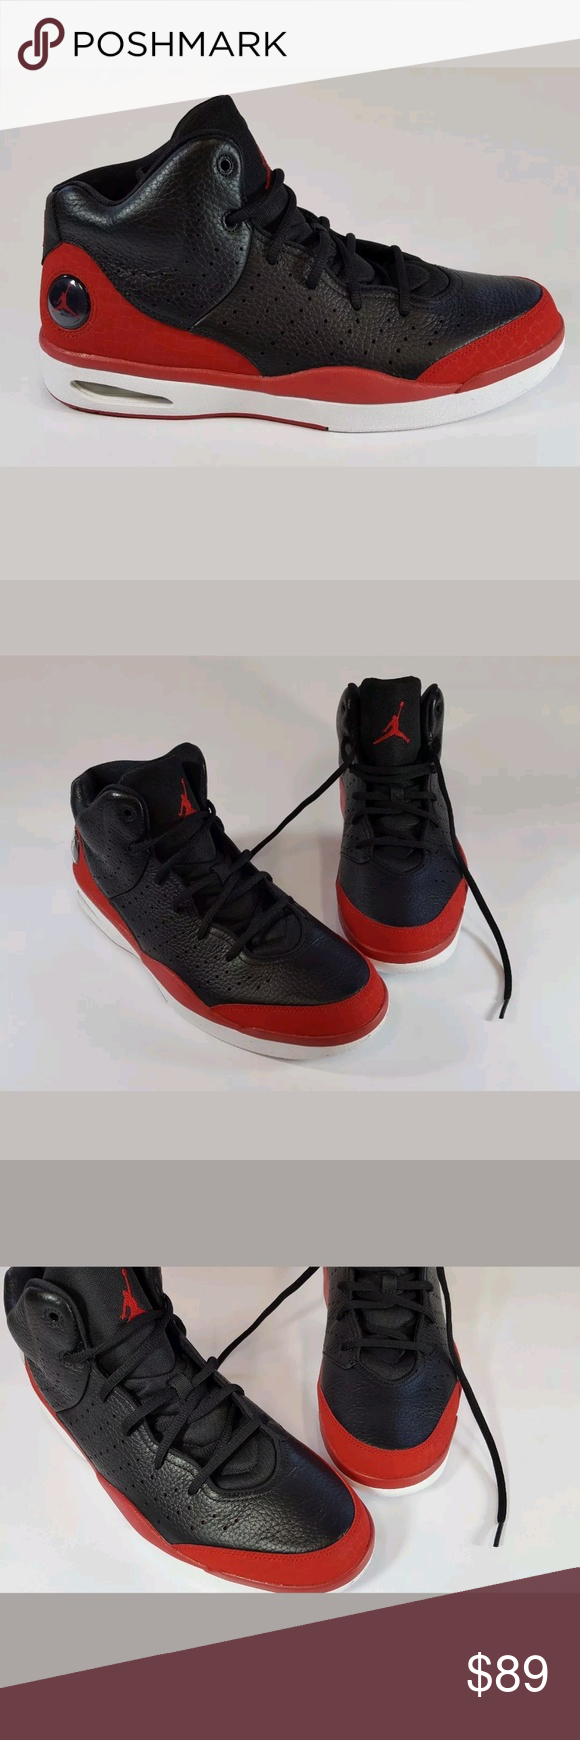 63322d6f247 NIKE AIR JORDAN FLIGHT TRADITION 819472 001 Black Brand new only been tried  on. Nike Shoes Athletic Shoes